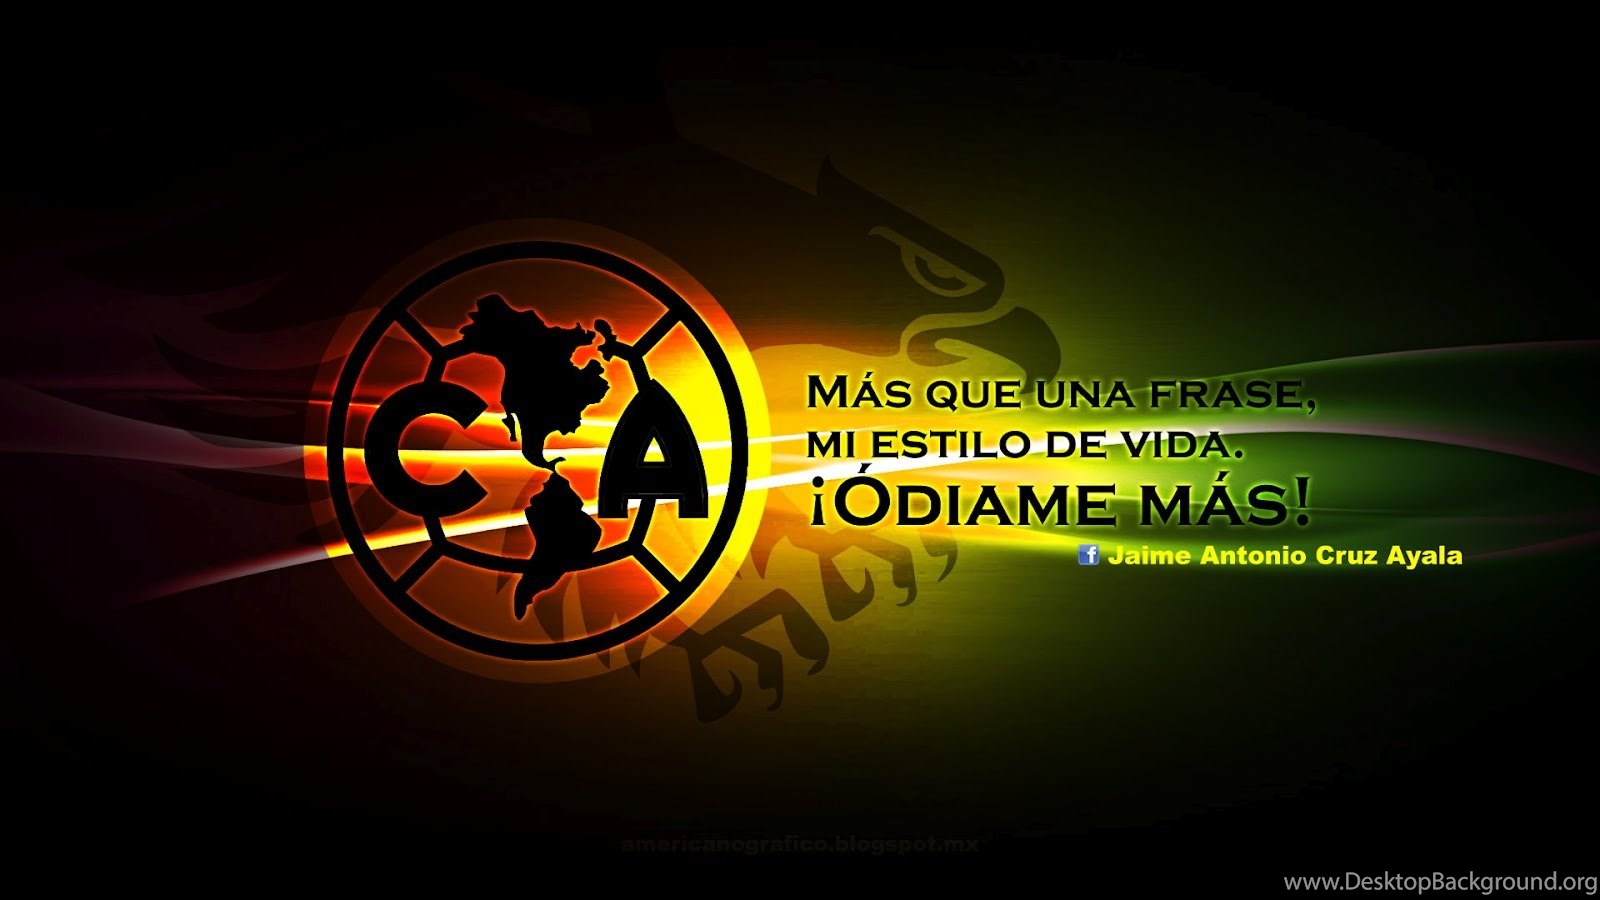 Club America Wallpapers Hd Desktop Background